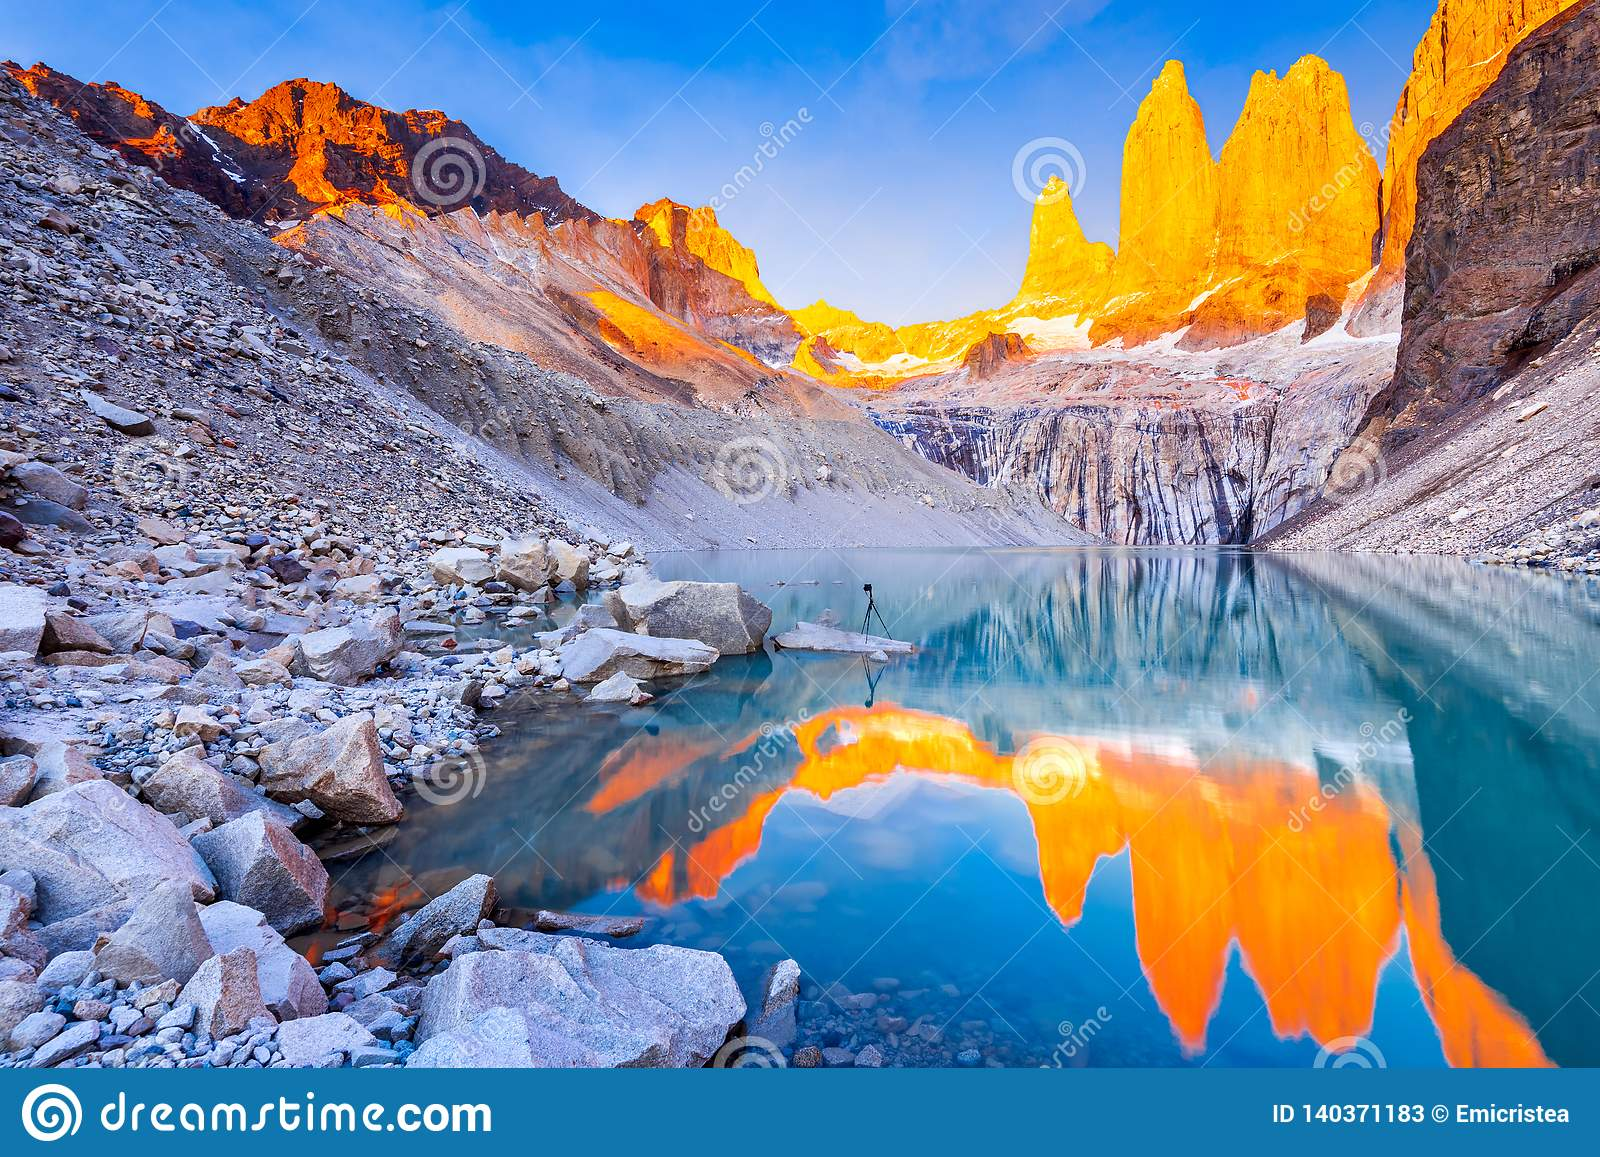 Patagonia South America >> Torres Del Paine Patagonia Chile Stock Image Image Of